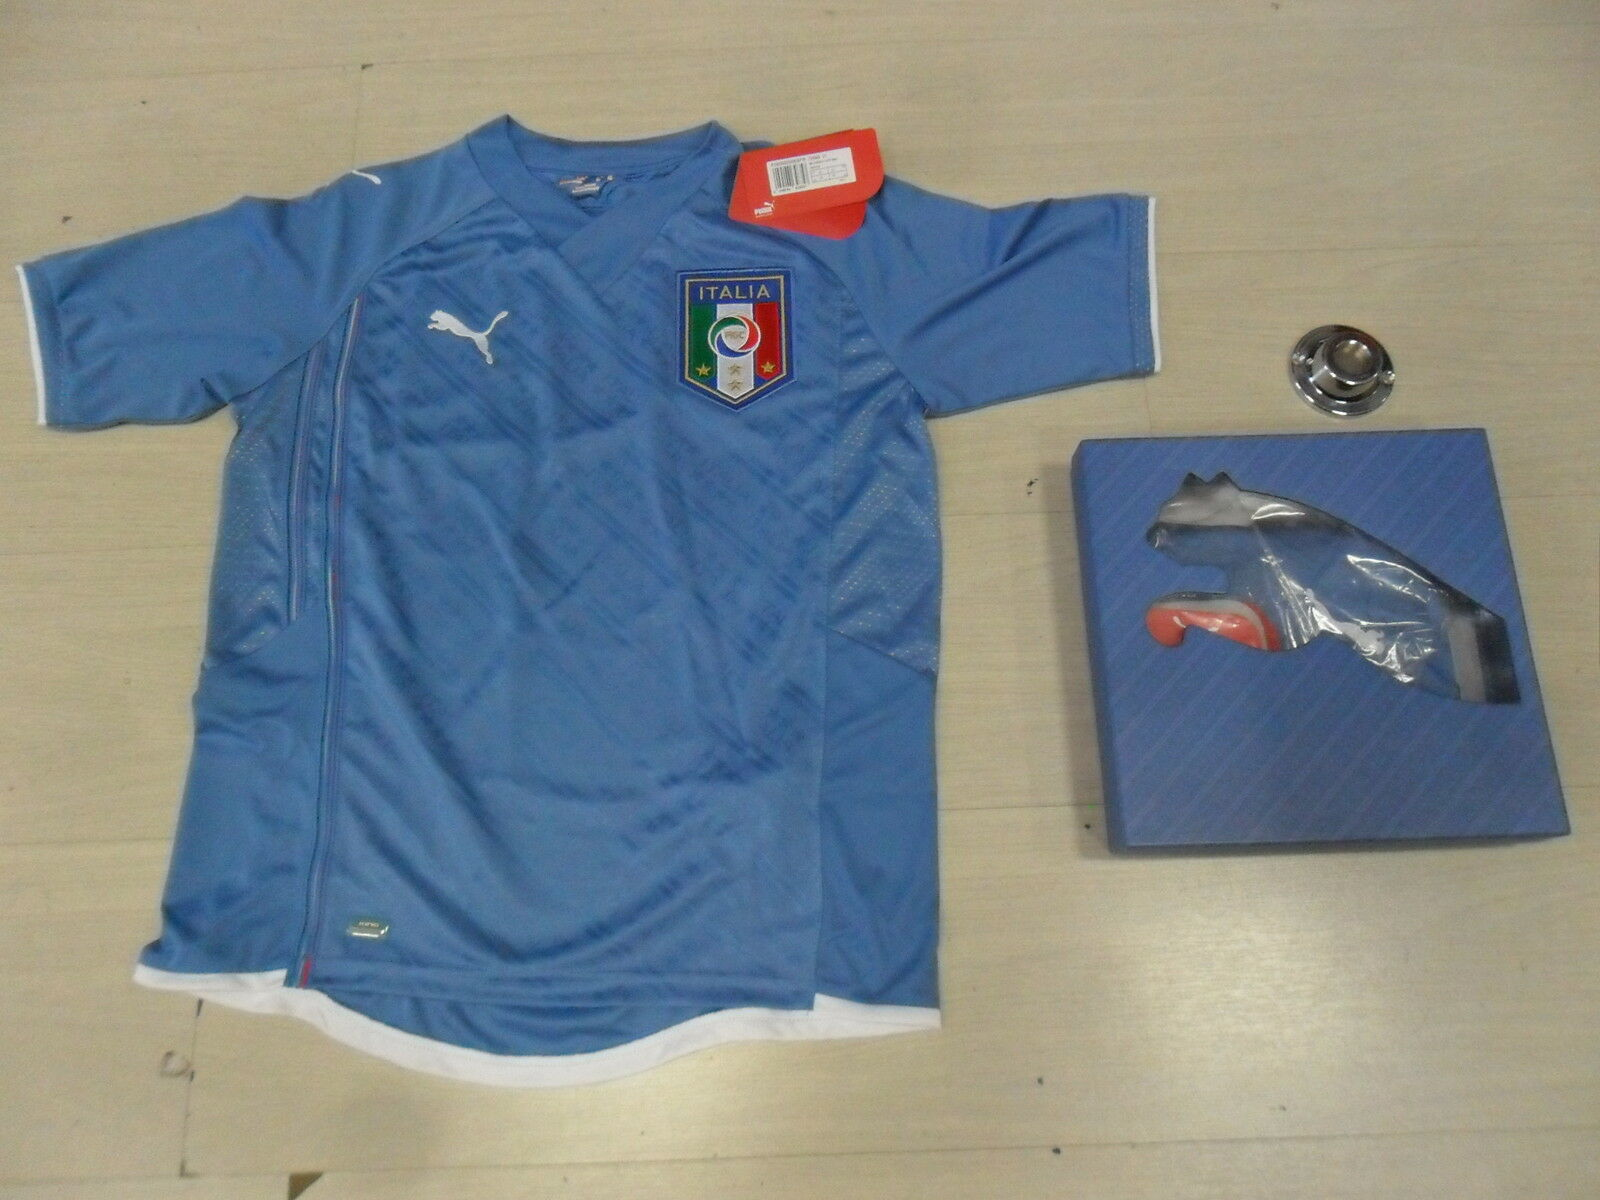 1148 SIZE XS ITALY ITALY T-SHIRT CONFEDERATIONS CUP 2009 SHIRT JERSEY